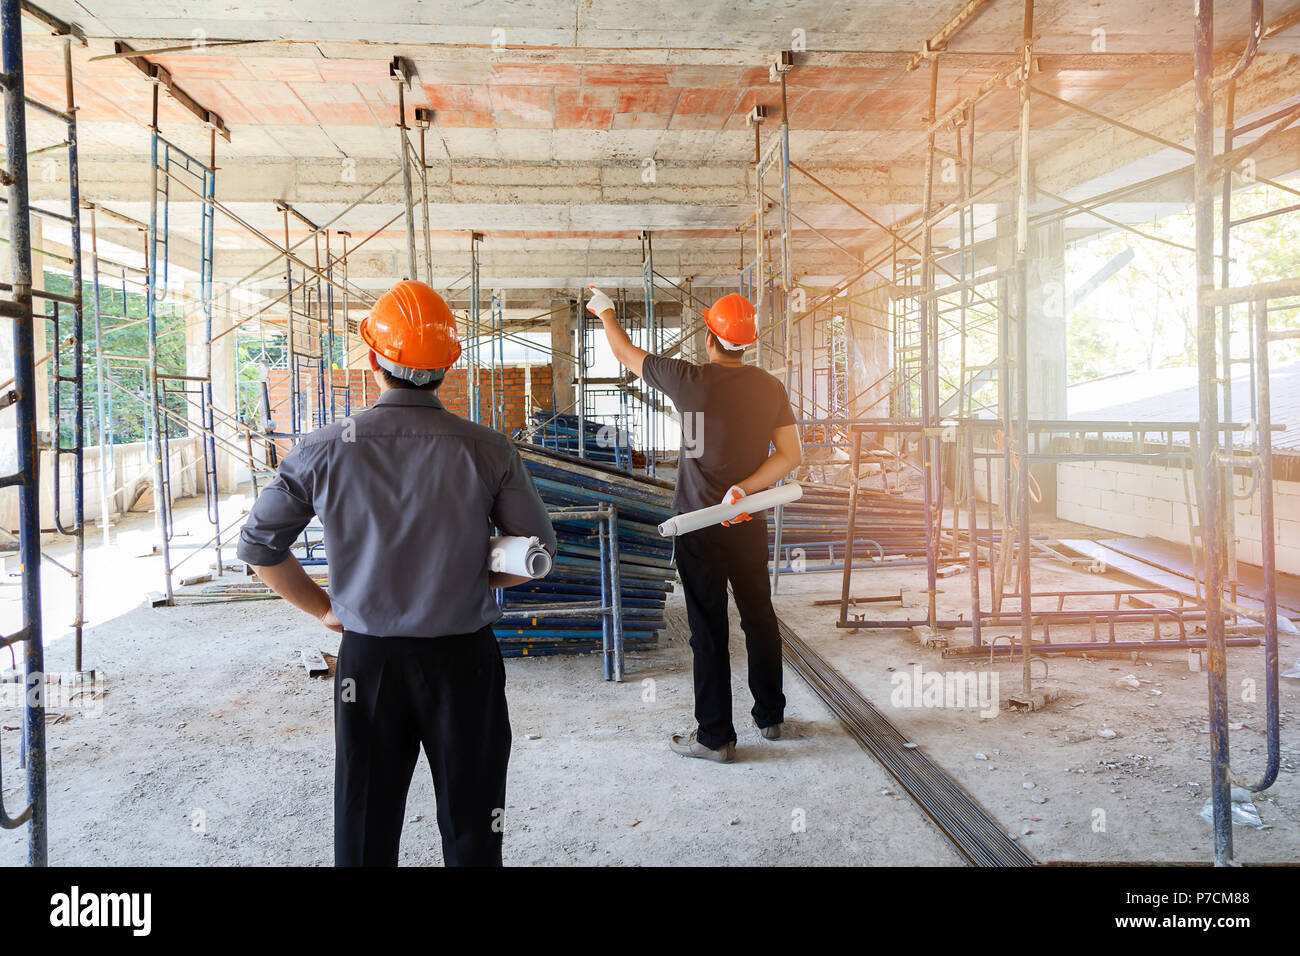 Engineer discussing with foreman about project in building construction site Stock Photo